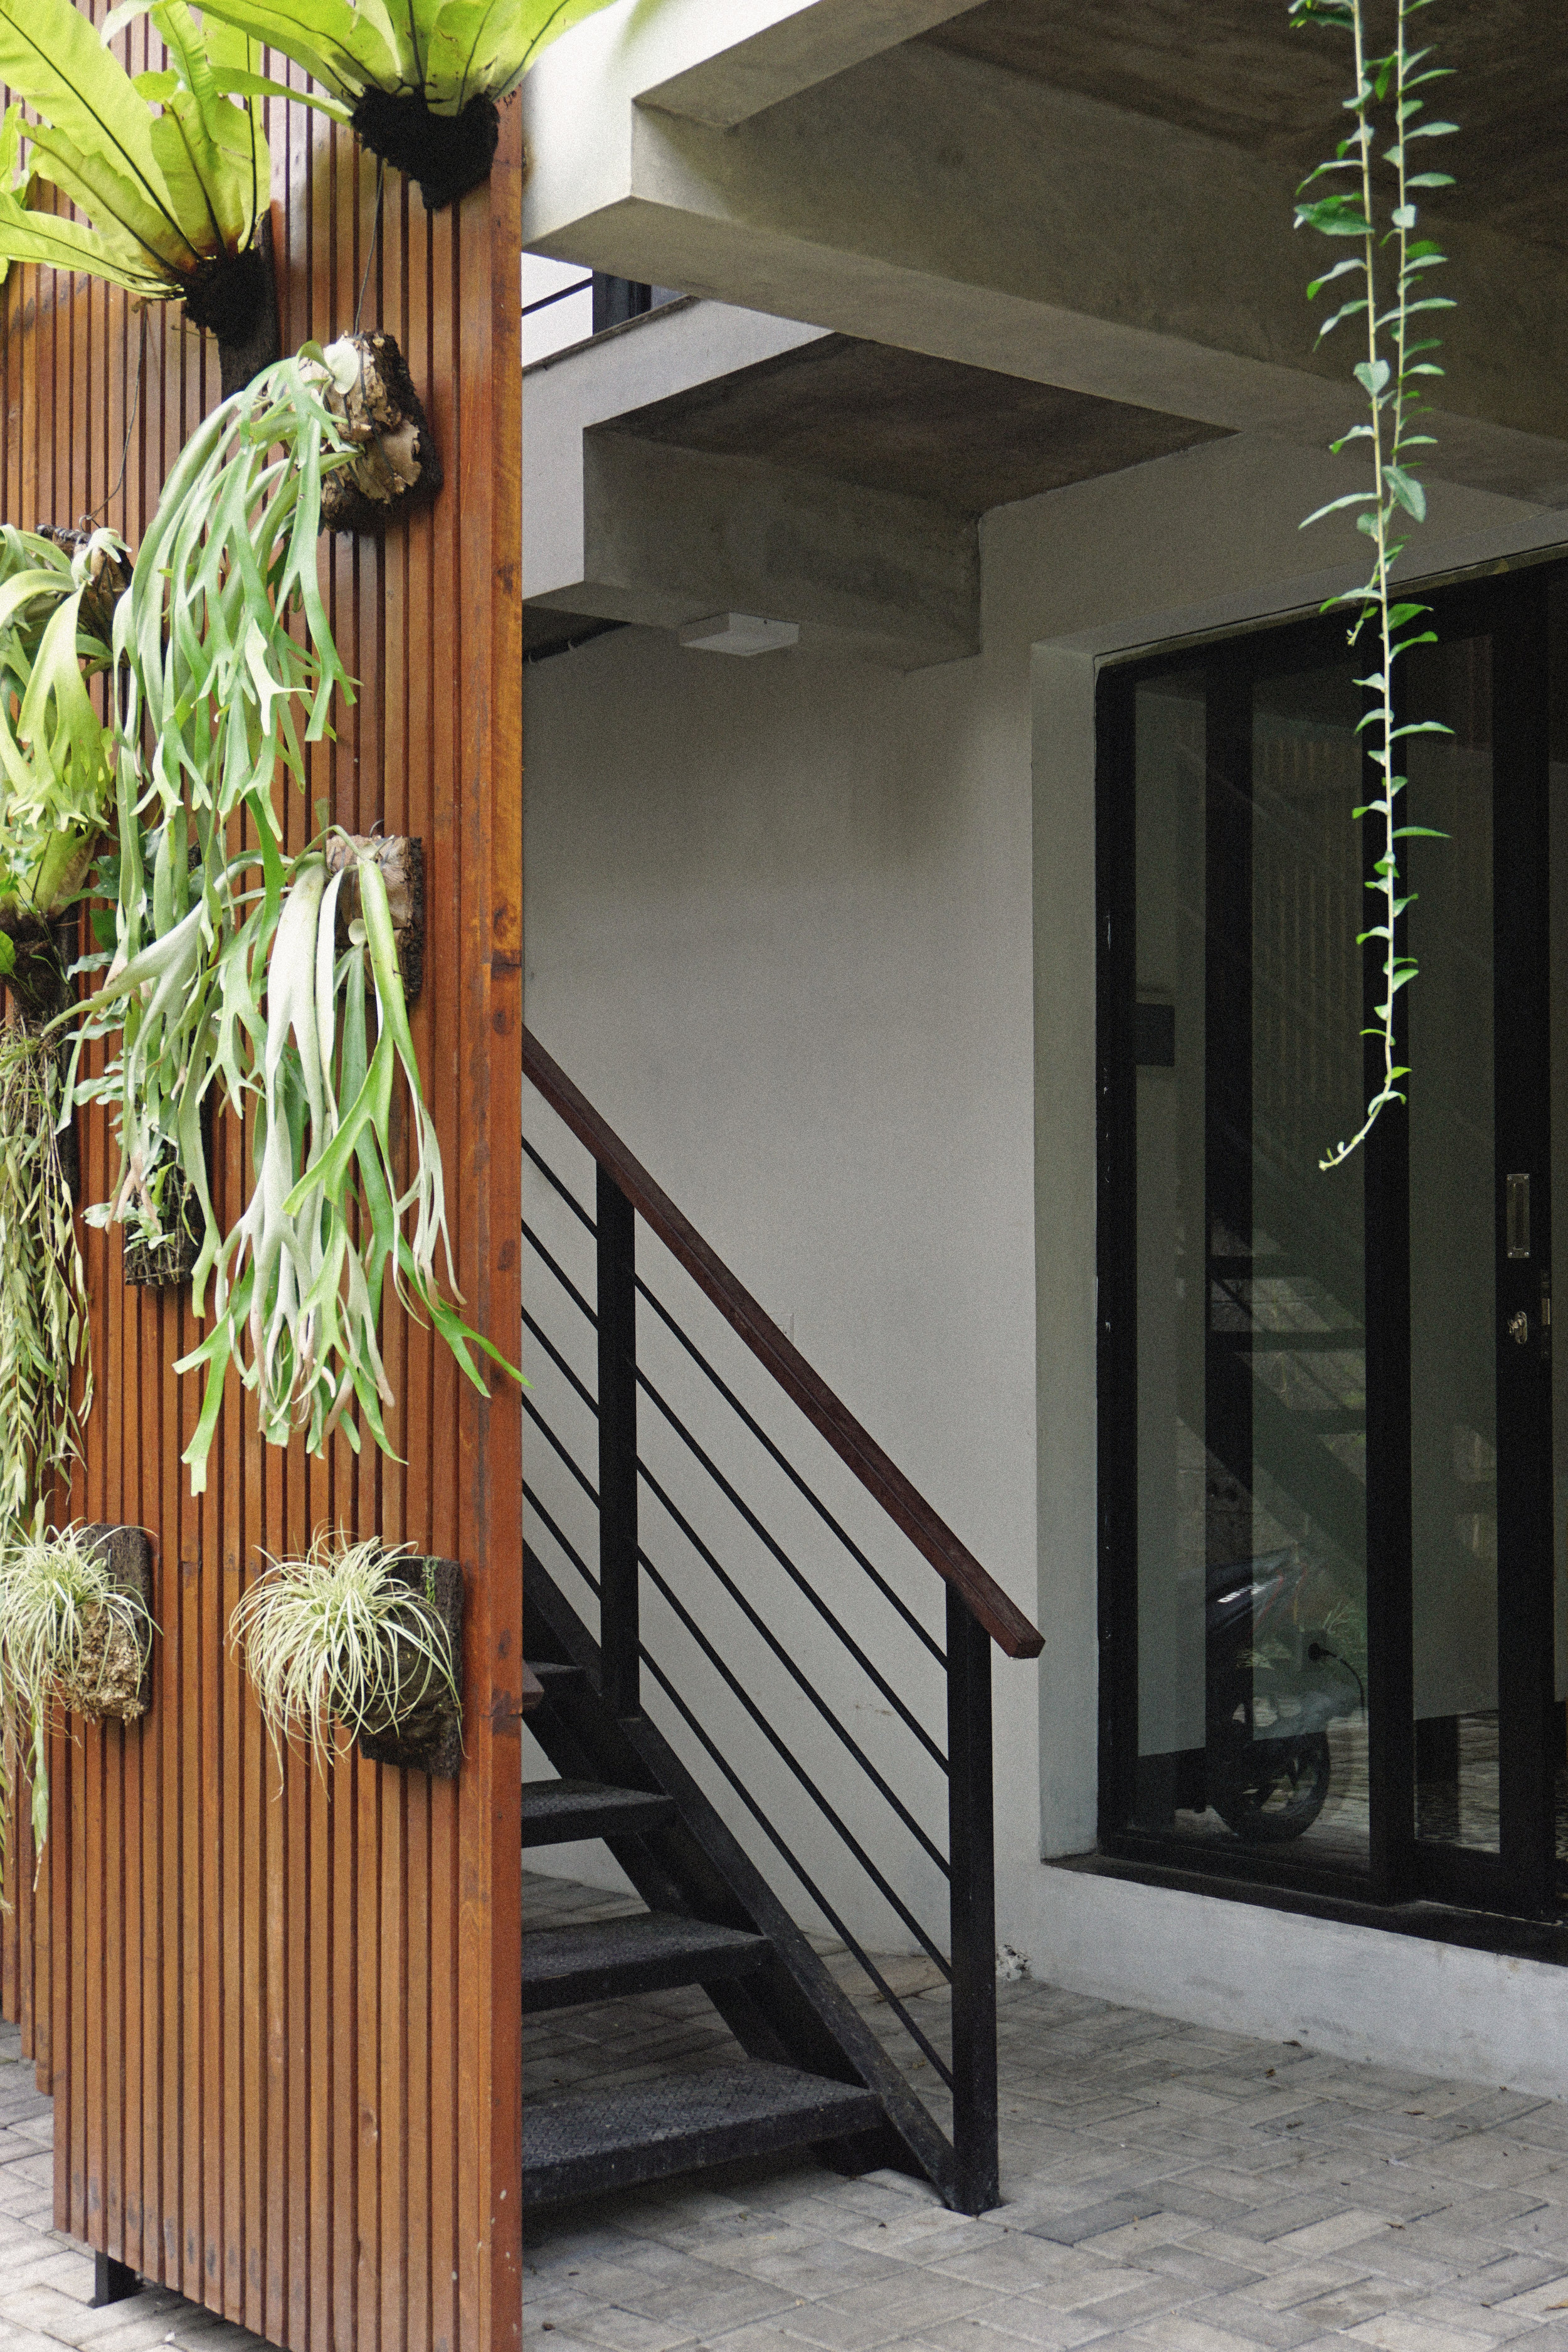 Architecture_ Seminyak Lofts , 2016 / Completed 10.2018